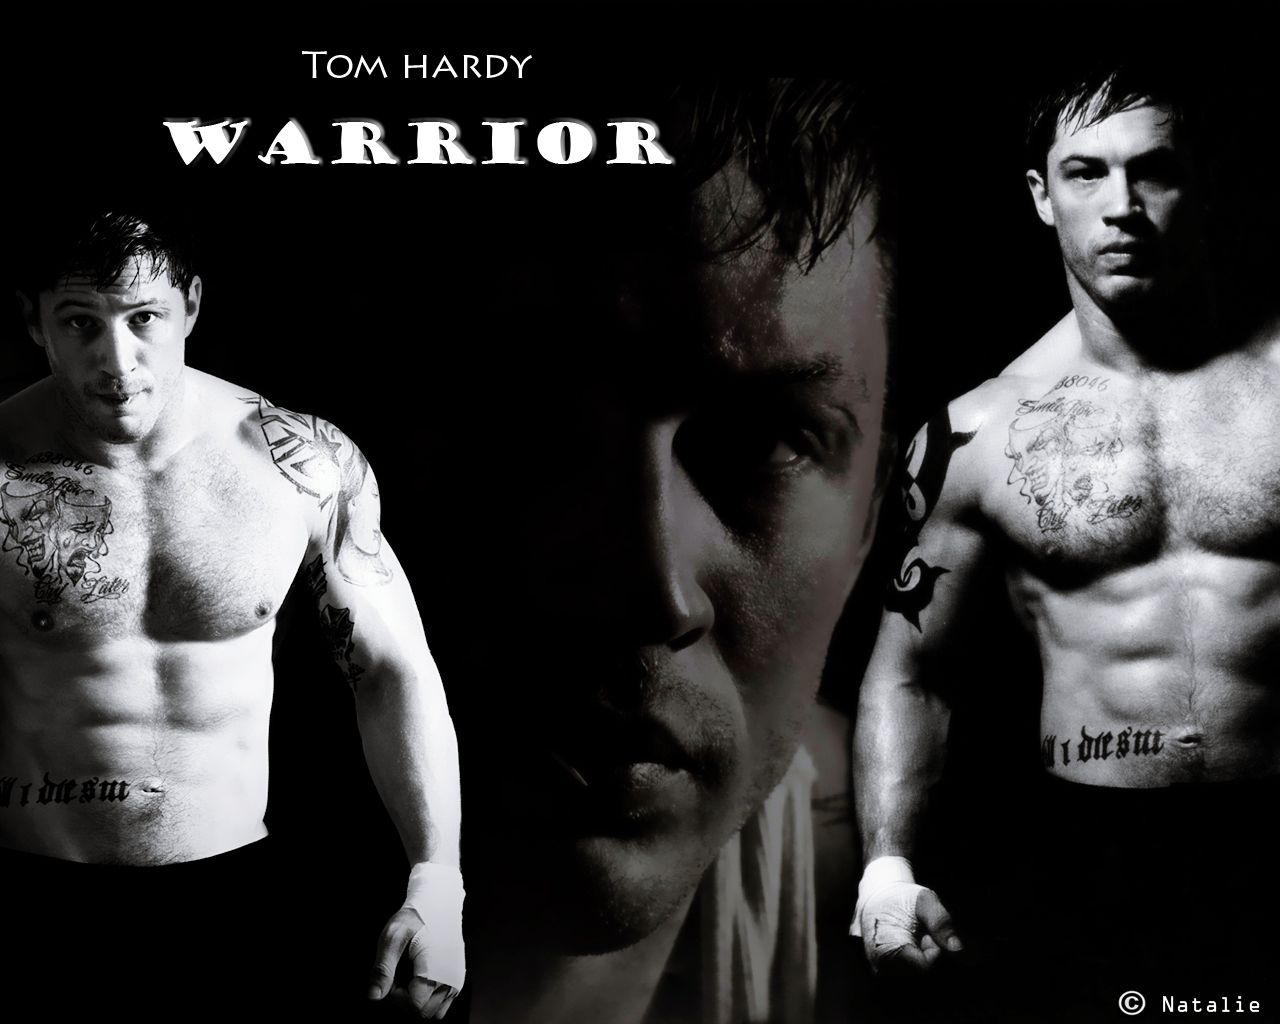 Tom Hardy Warrior Wallpapers Top Free Tom Hardy Warrior Backgrounds Wallpaperaccess